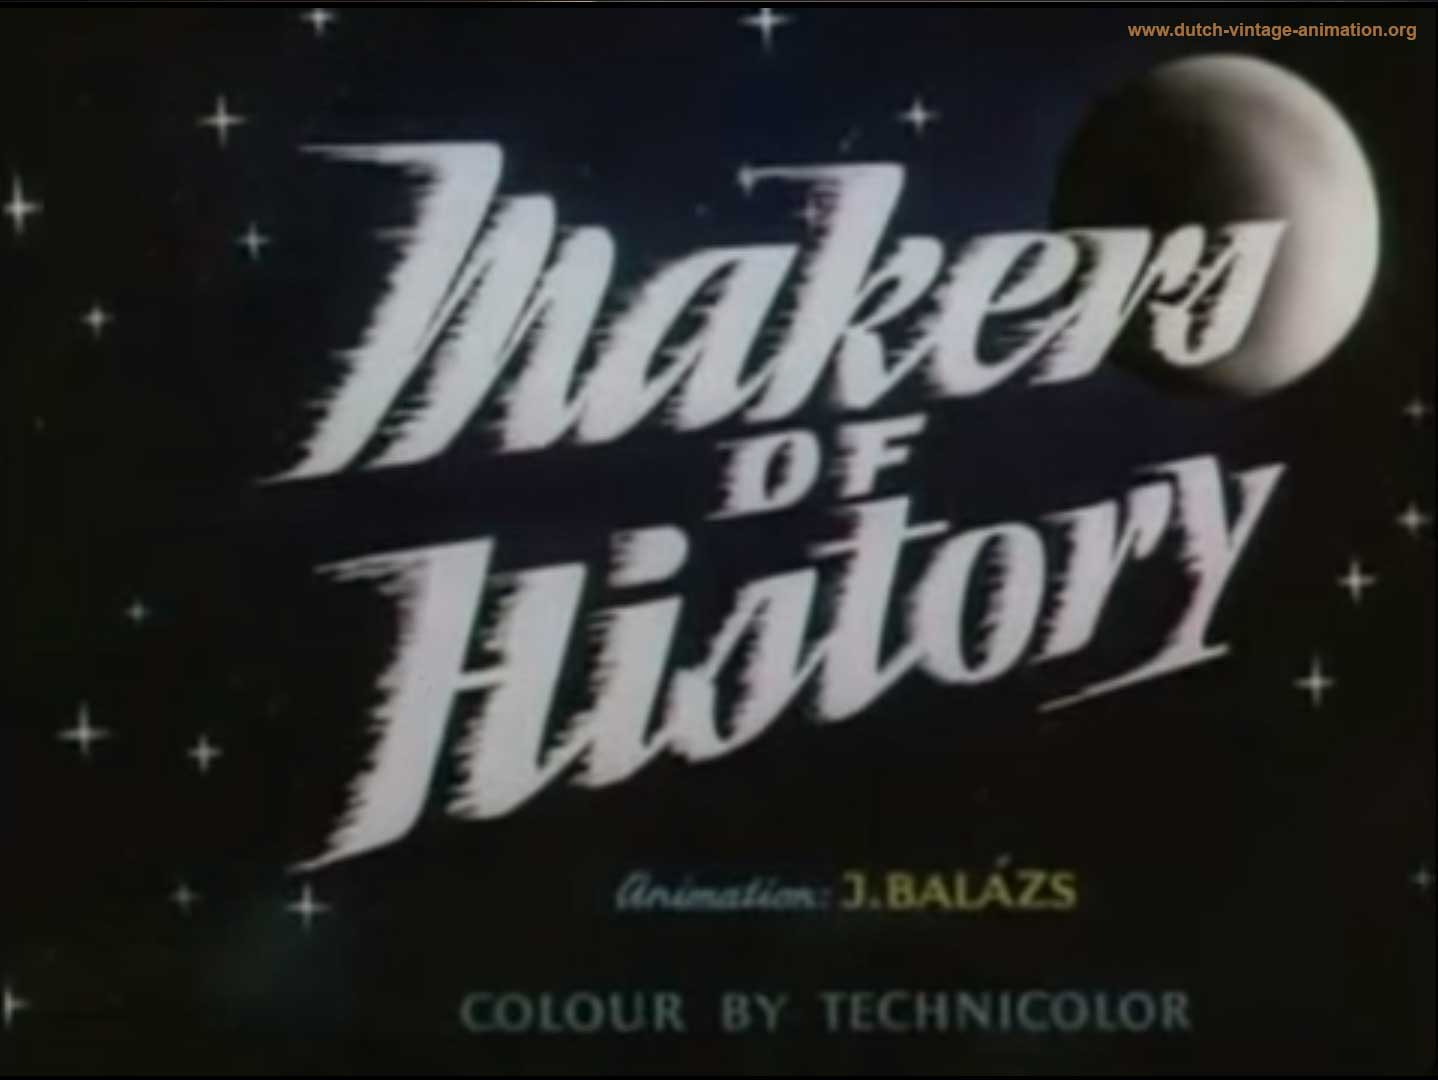 Makers of History (1955)